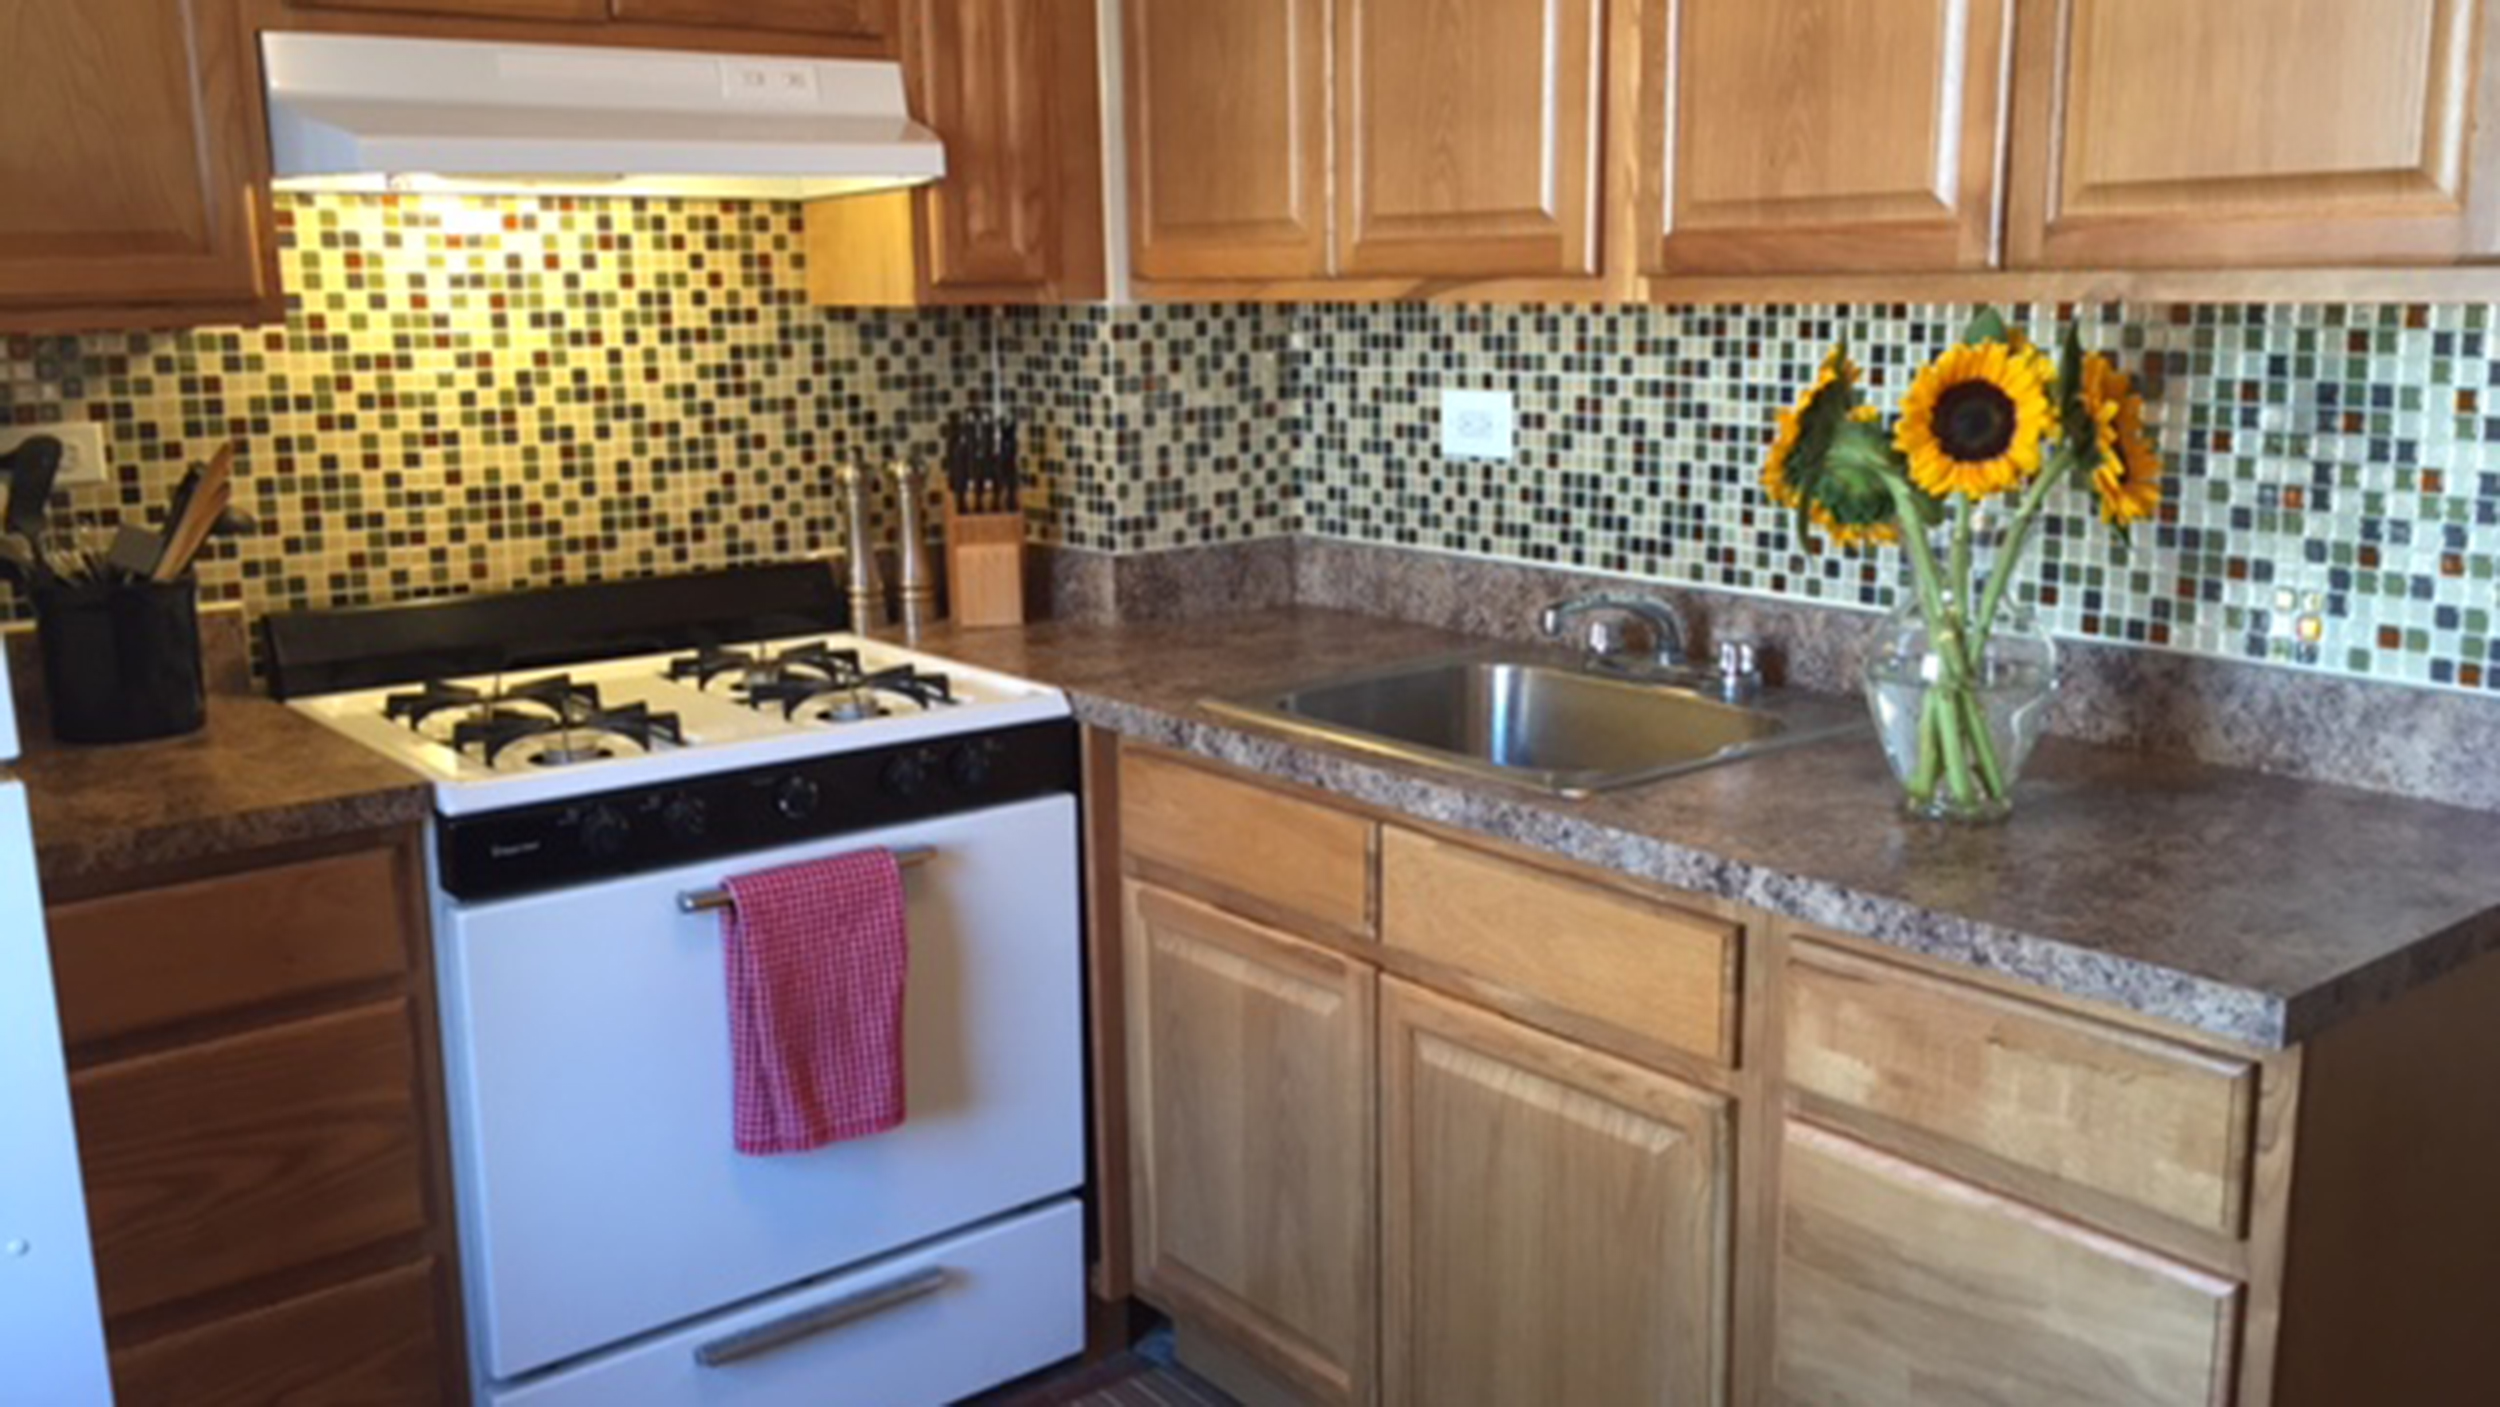 Today tests temporary backsplash tiles from smart tiles dailygadgetfo Choice Image